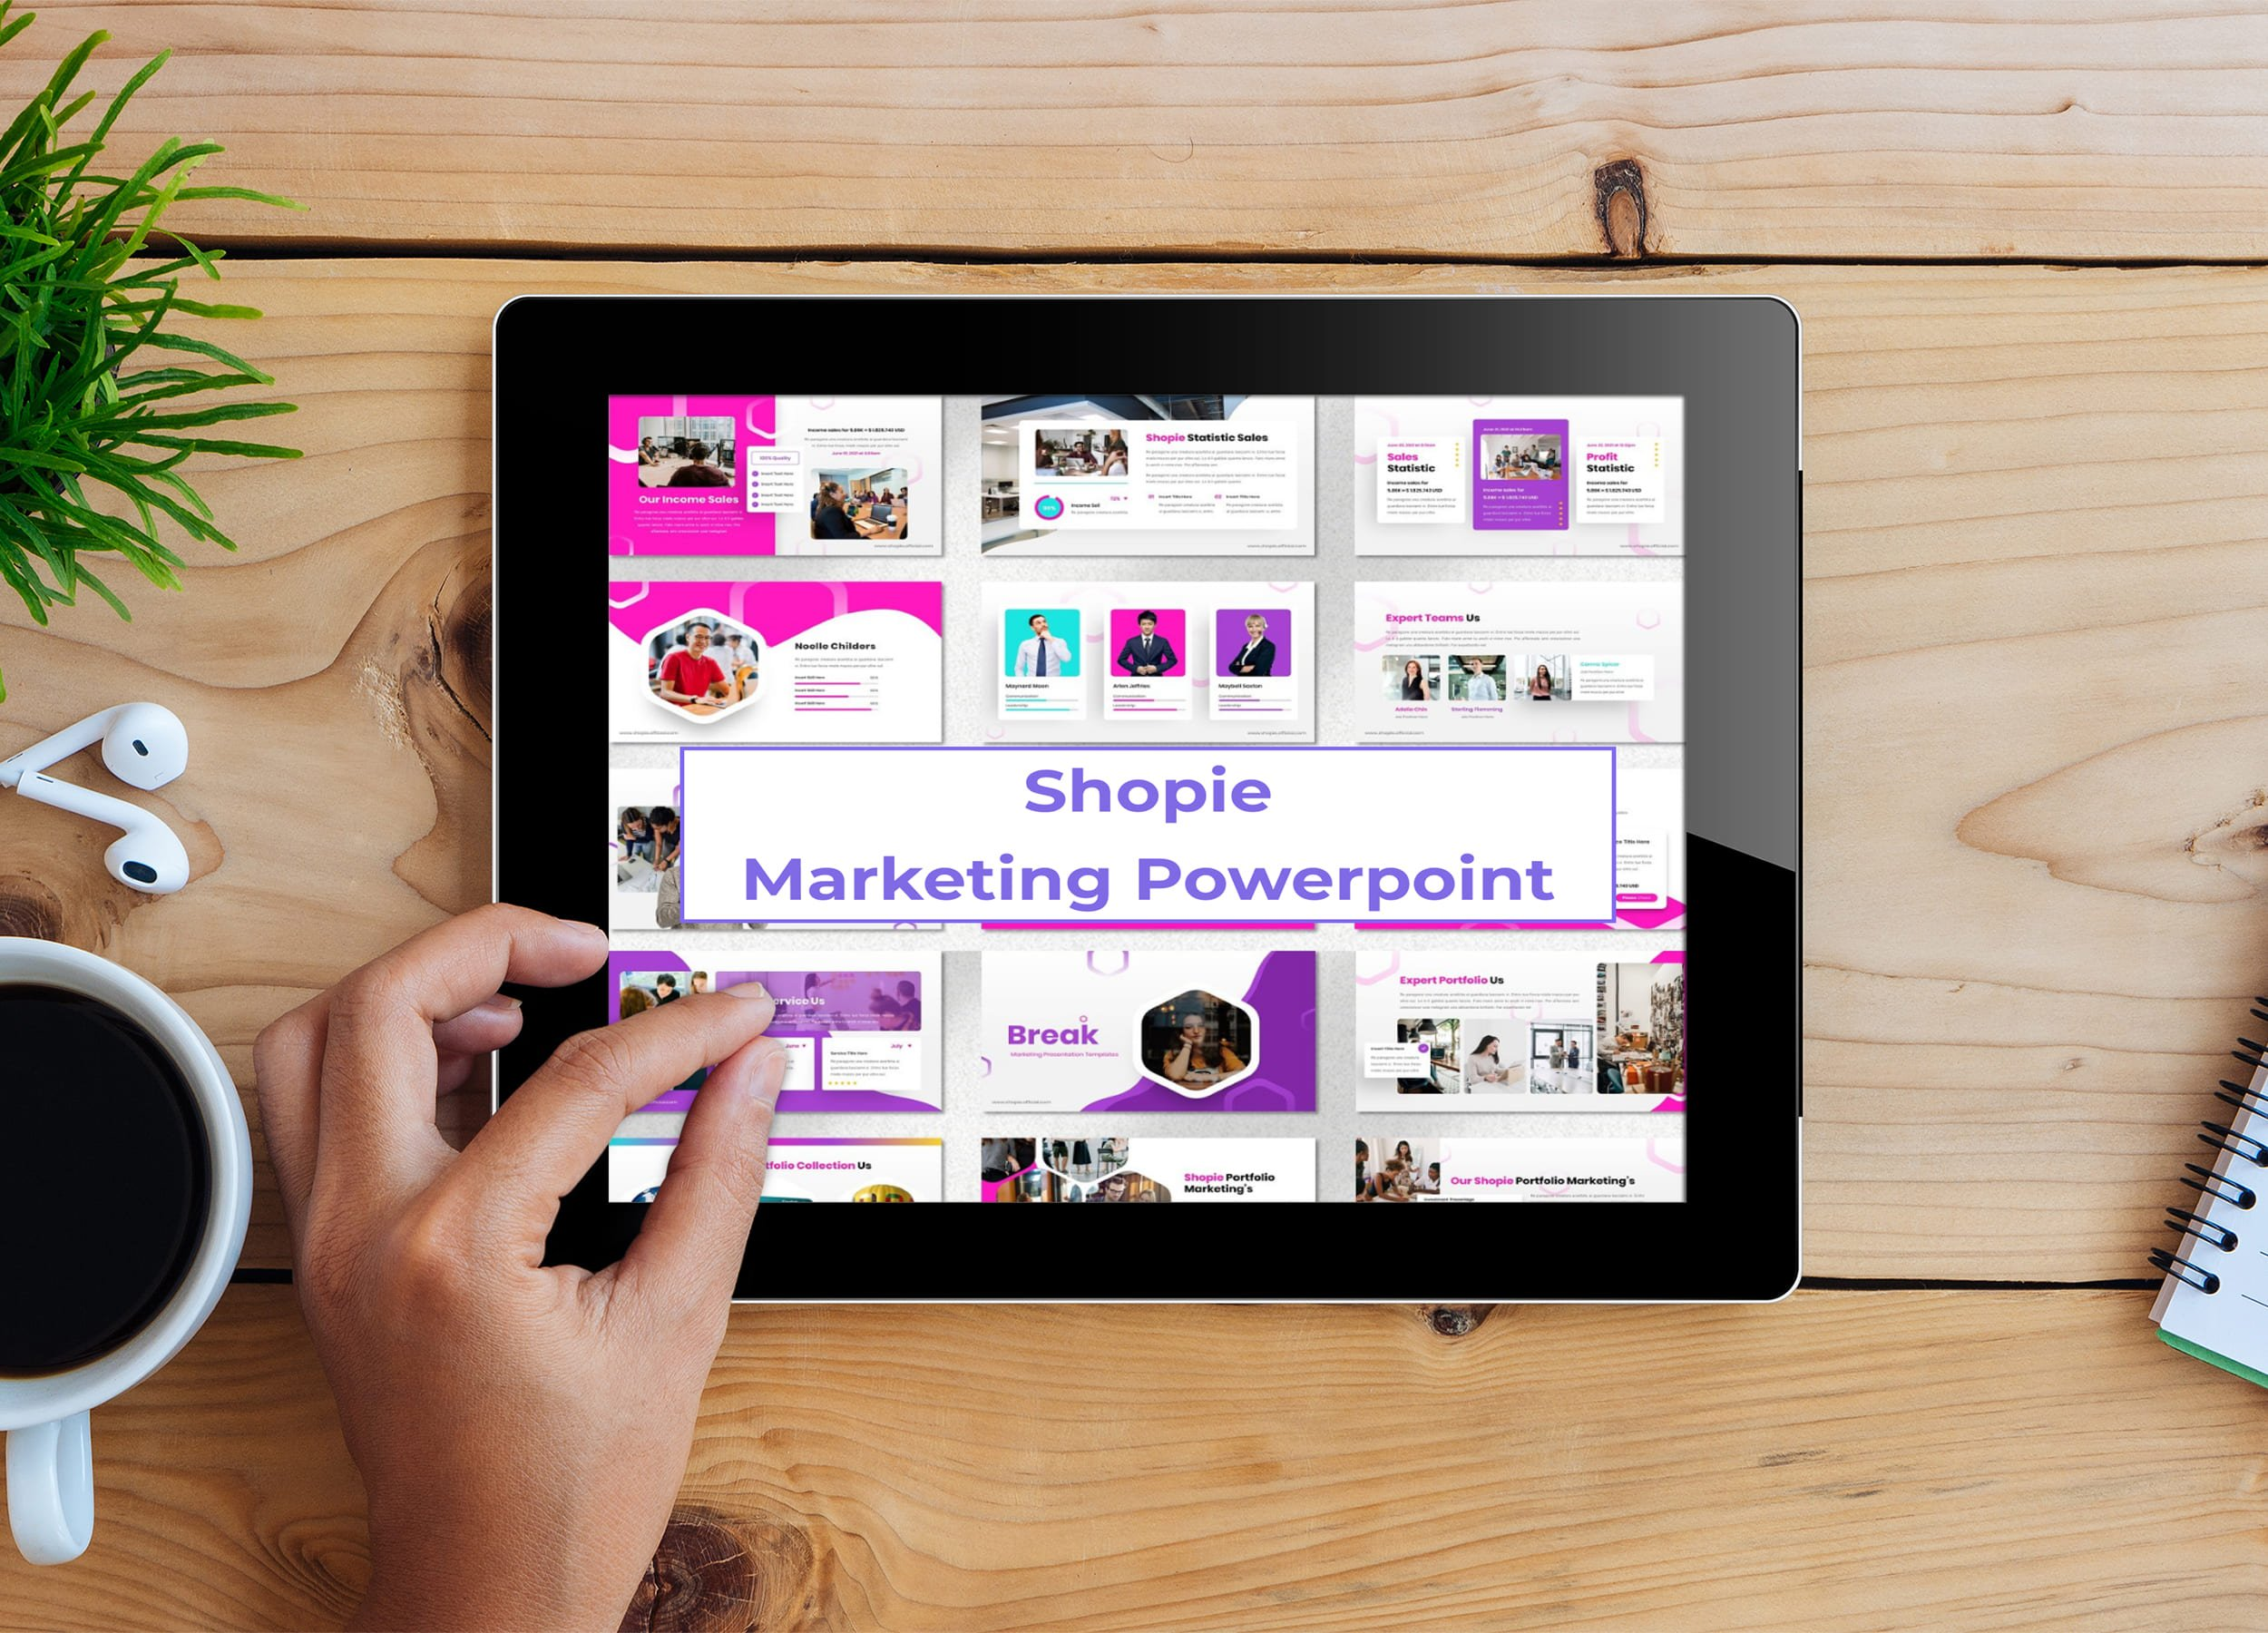 Tablet option of the Shopie - Marketing Powerpoint.